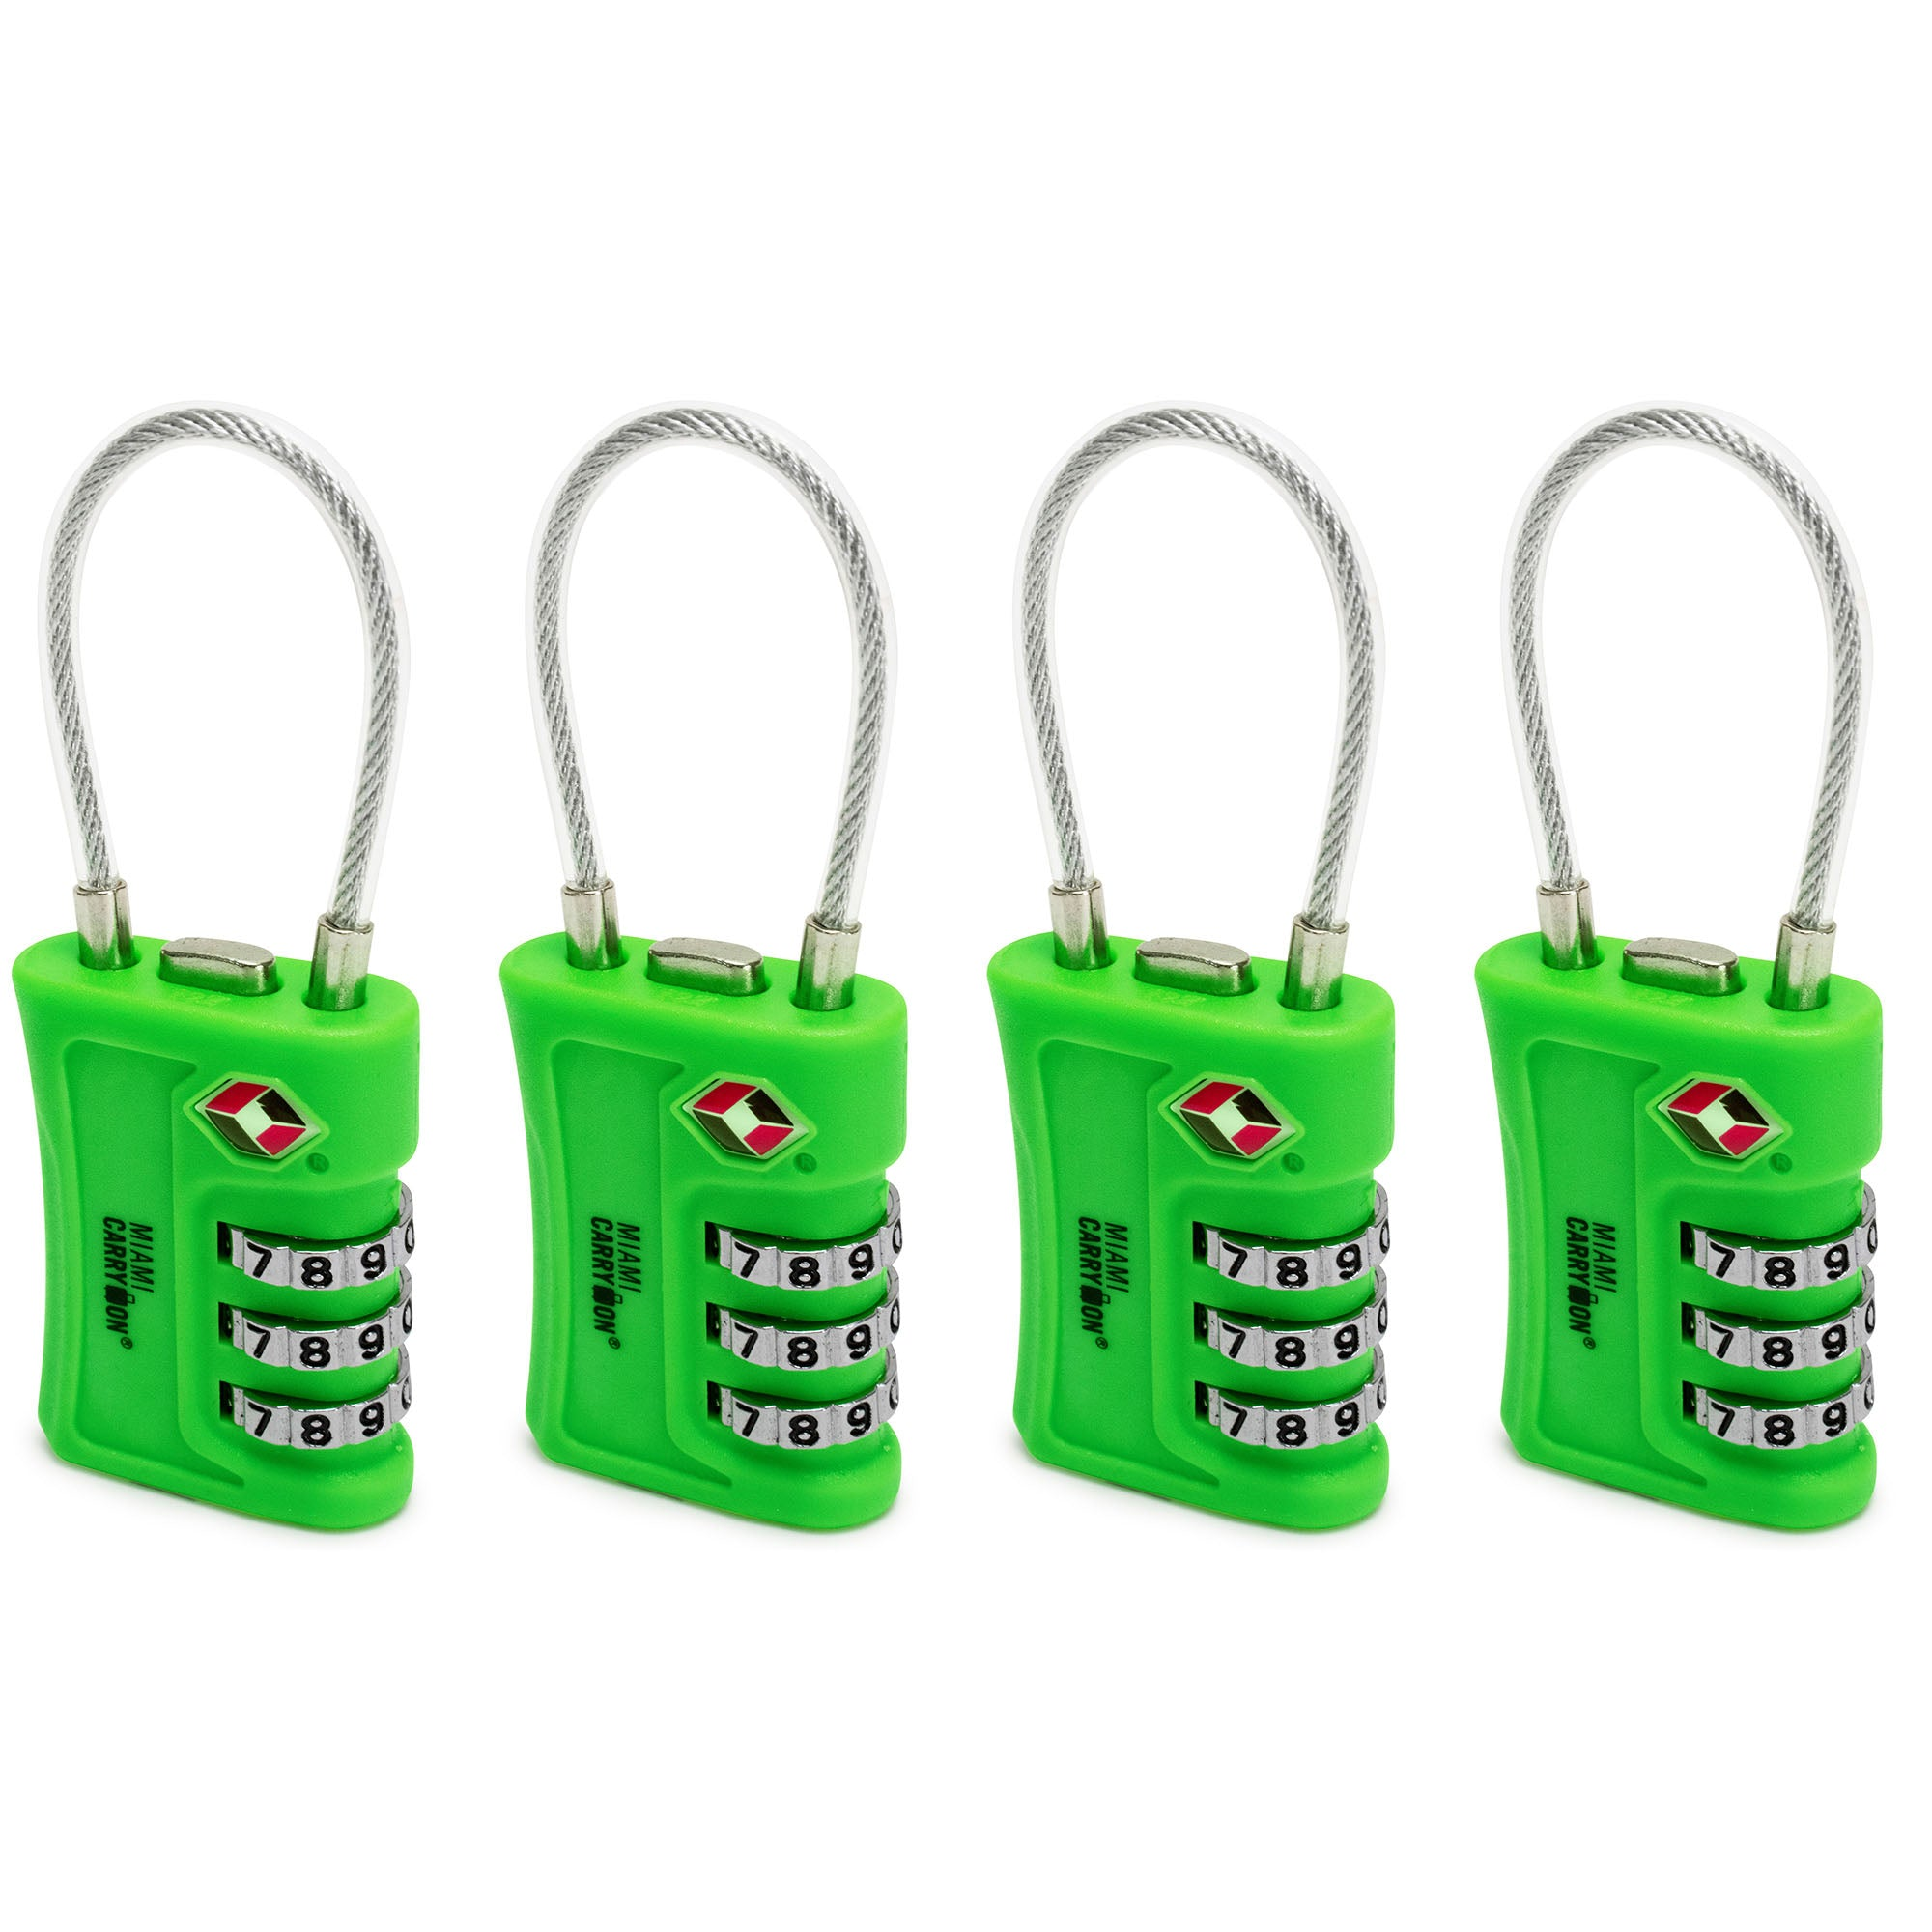 TSA Approved Cable Combination Padlock [VALUE SET] - Green / 4 Pack - Travellty